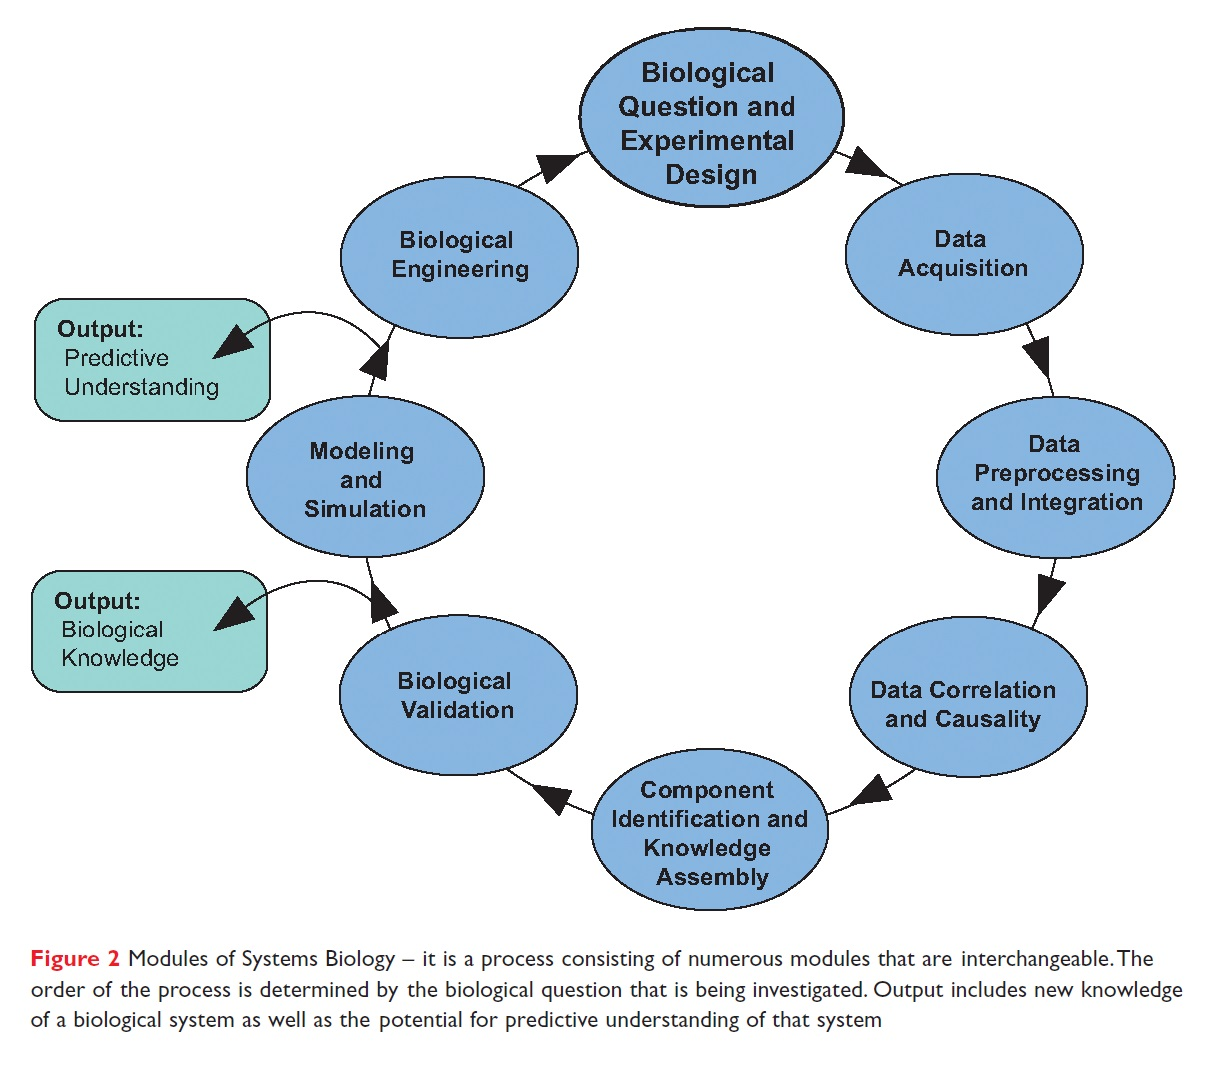 Figure 2 Modules of Systems Biology - it is a process consisting of numerous modules that are interchangeable